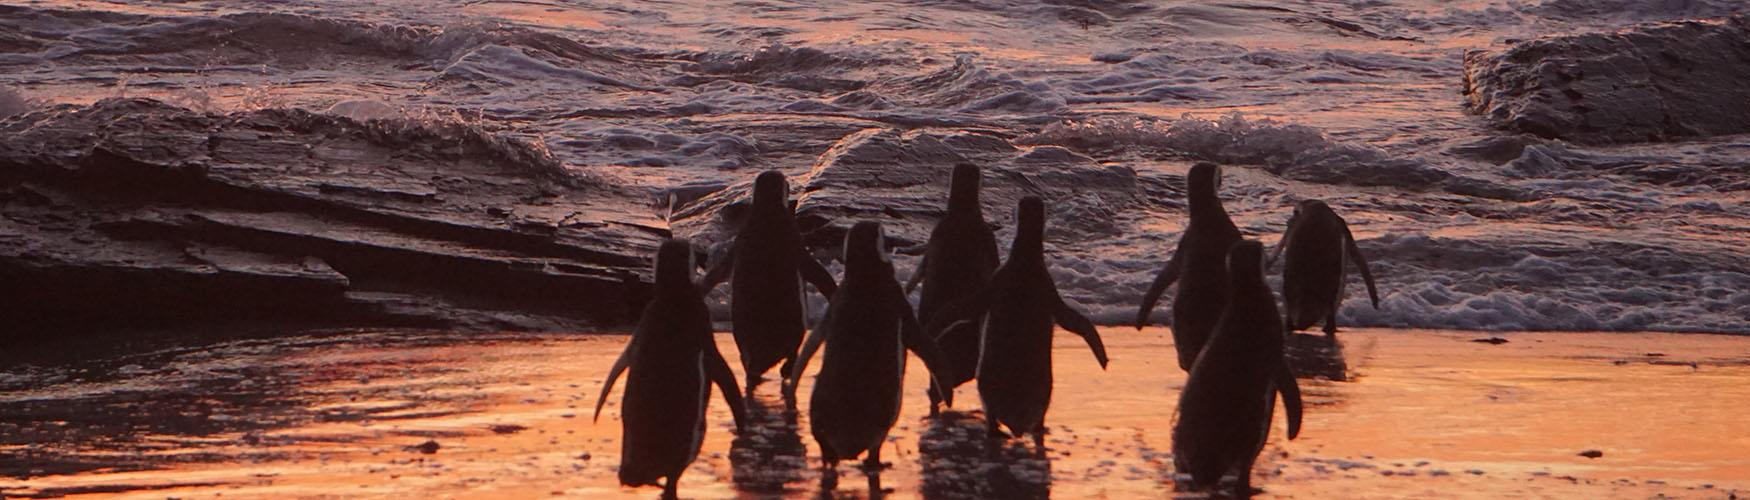 Magellanic Penguins going out to feed, Falkland Islands